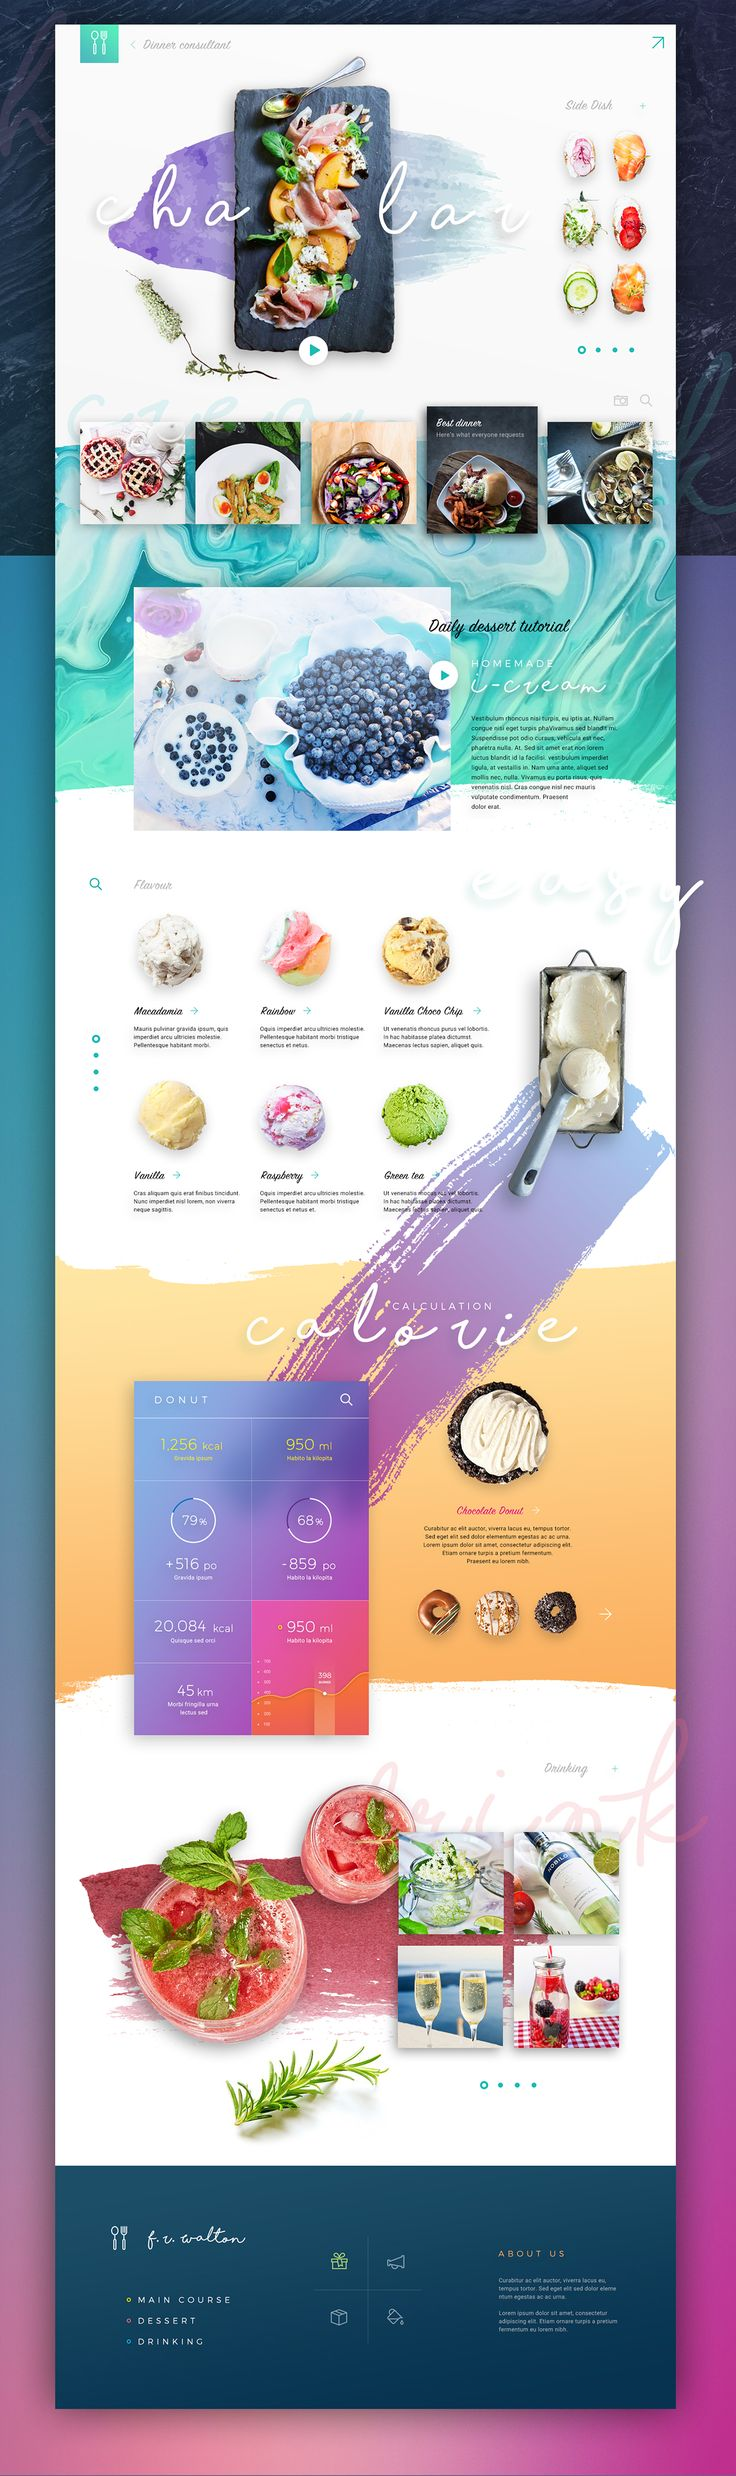 Chalar on Behance website design ui